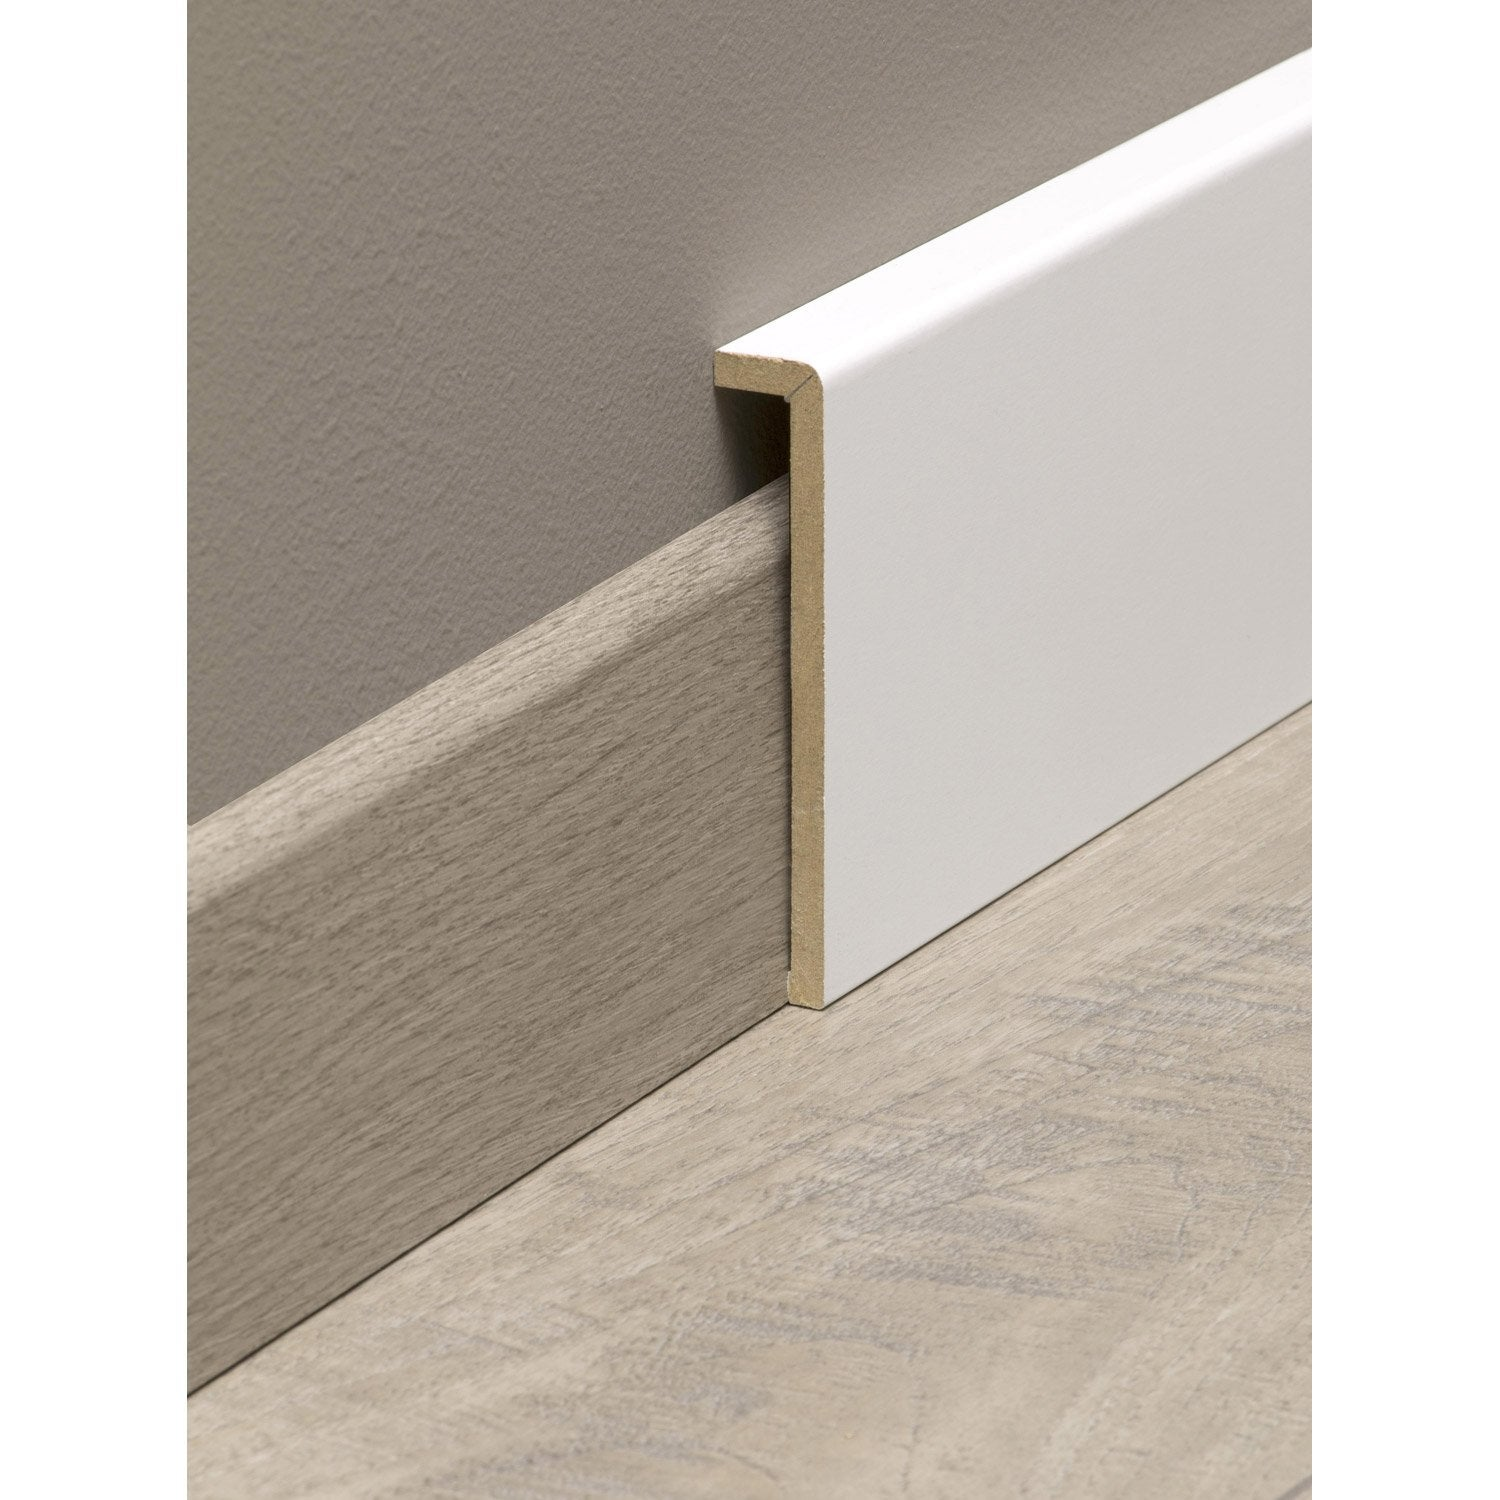 Surplinthe de r novation m dium mdf m lamin blanc 19 x for Peindre plinthe carrelage